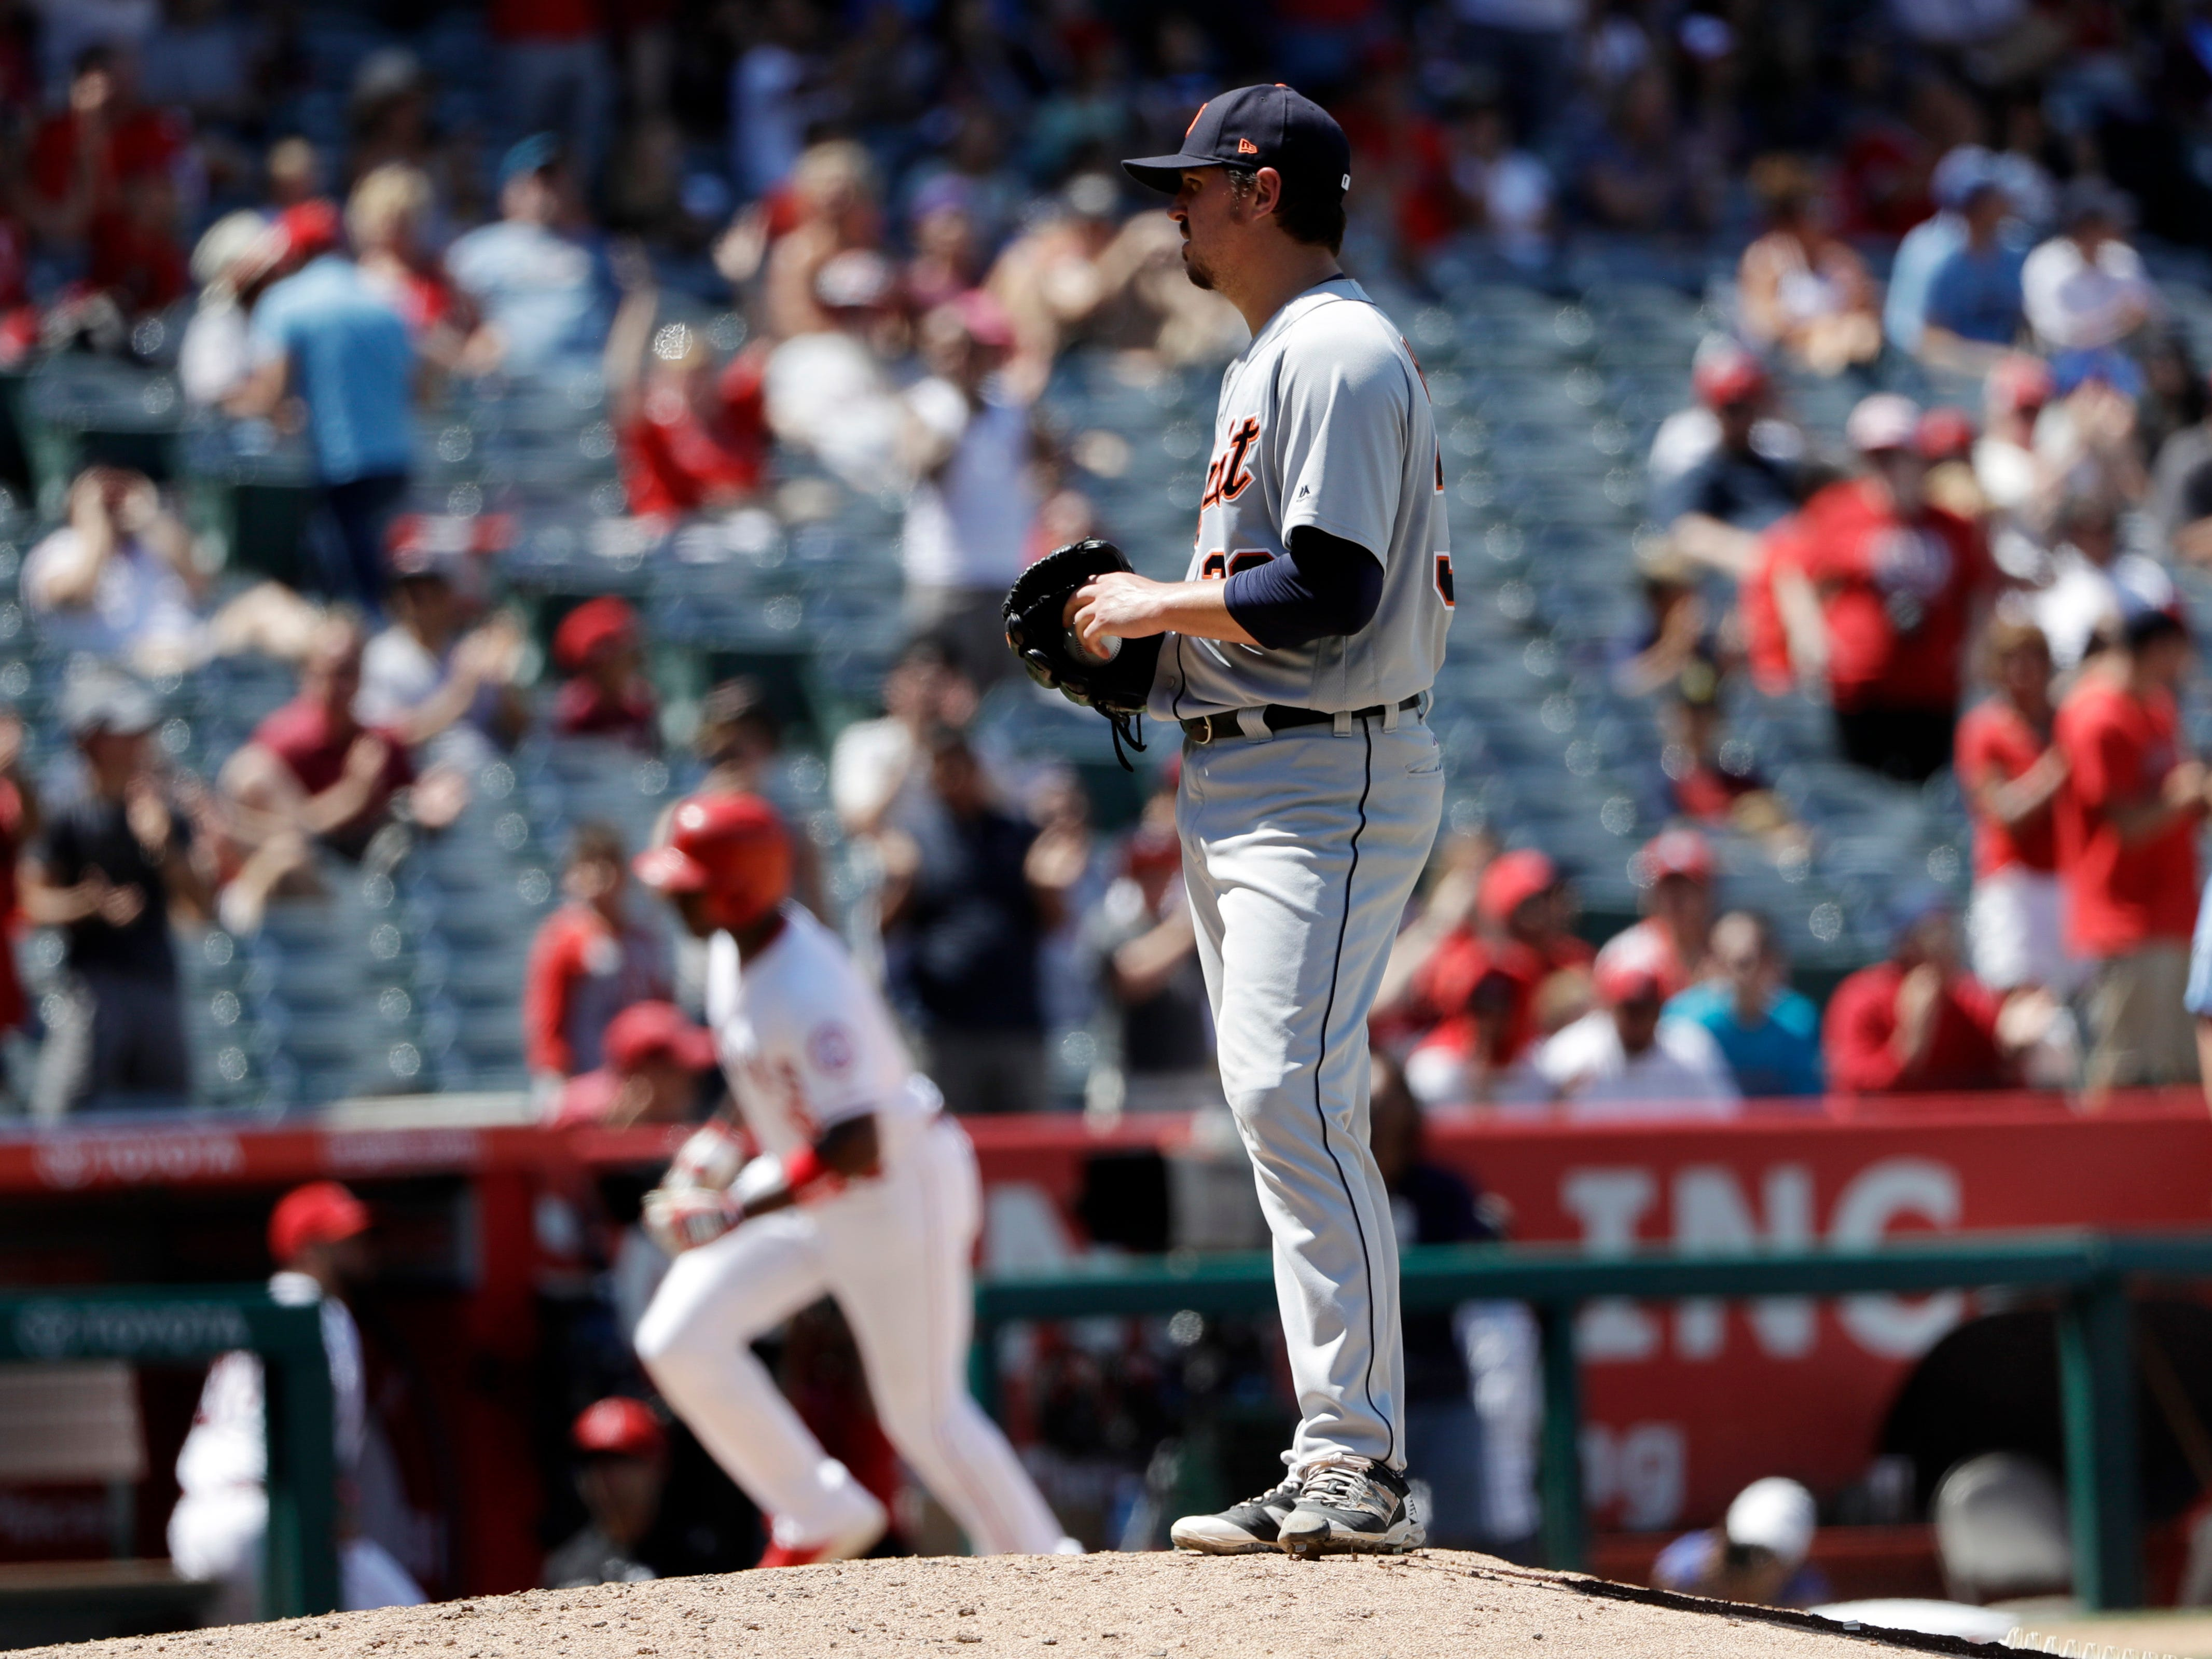 Detroit Tigers starting pitcher Blaine Hardy stands on the mound after giving up a two-run home run to Los Angeles Angels' Justin Upton, left, during the fifth inning of a baseball game Wednesday, Aug. 8, 2018, in Anaheim, Calif.